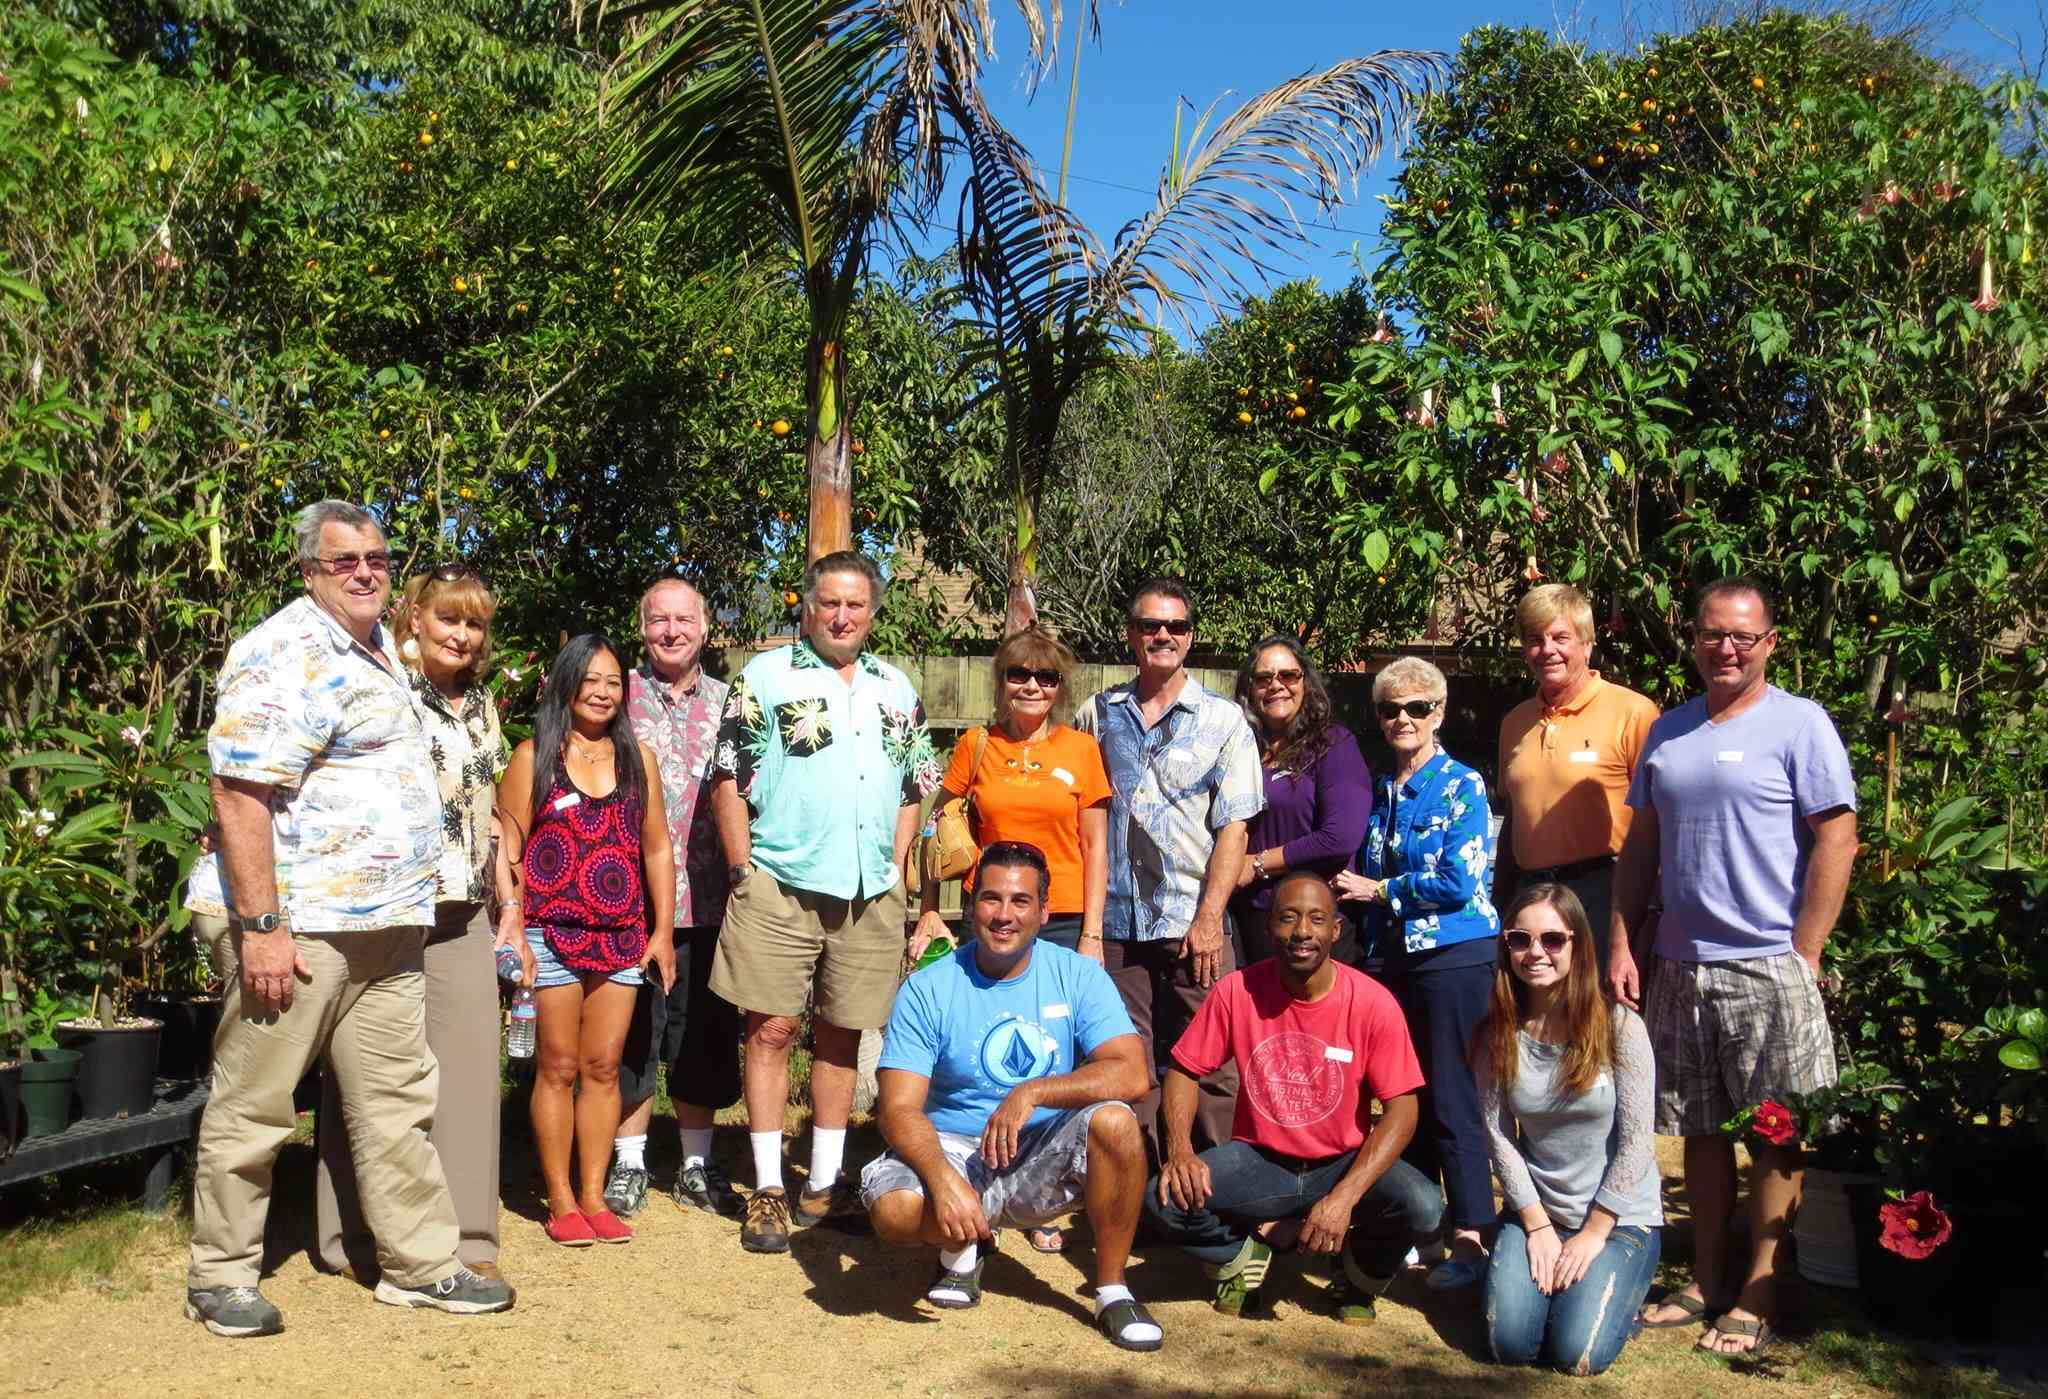 Santa-Barbara-SCHS-Group-Photo-10-25